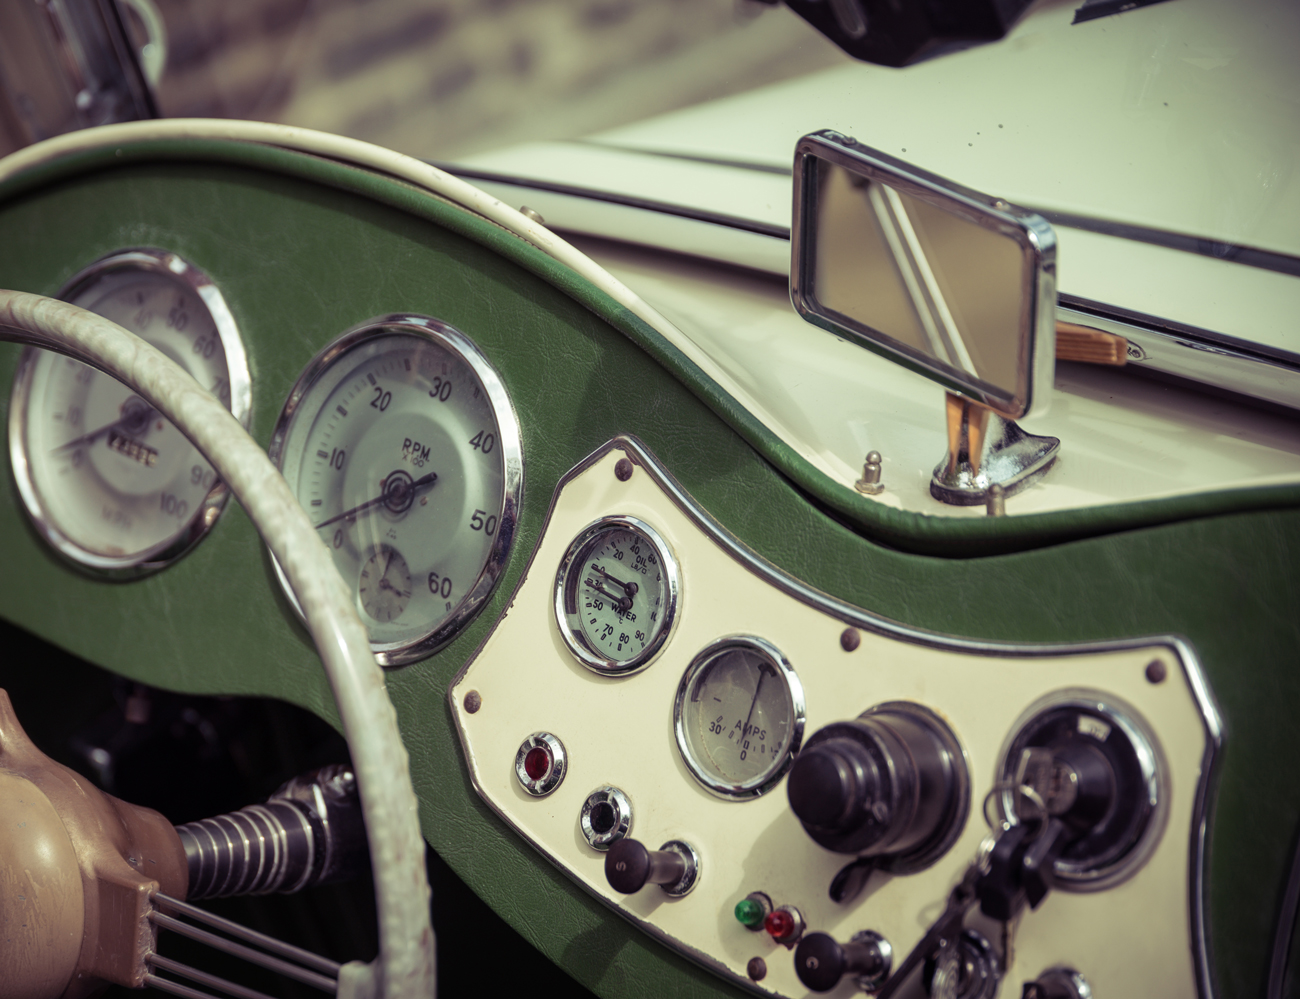 The dashboard of a vintage classic car